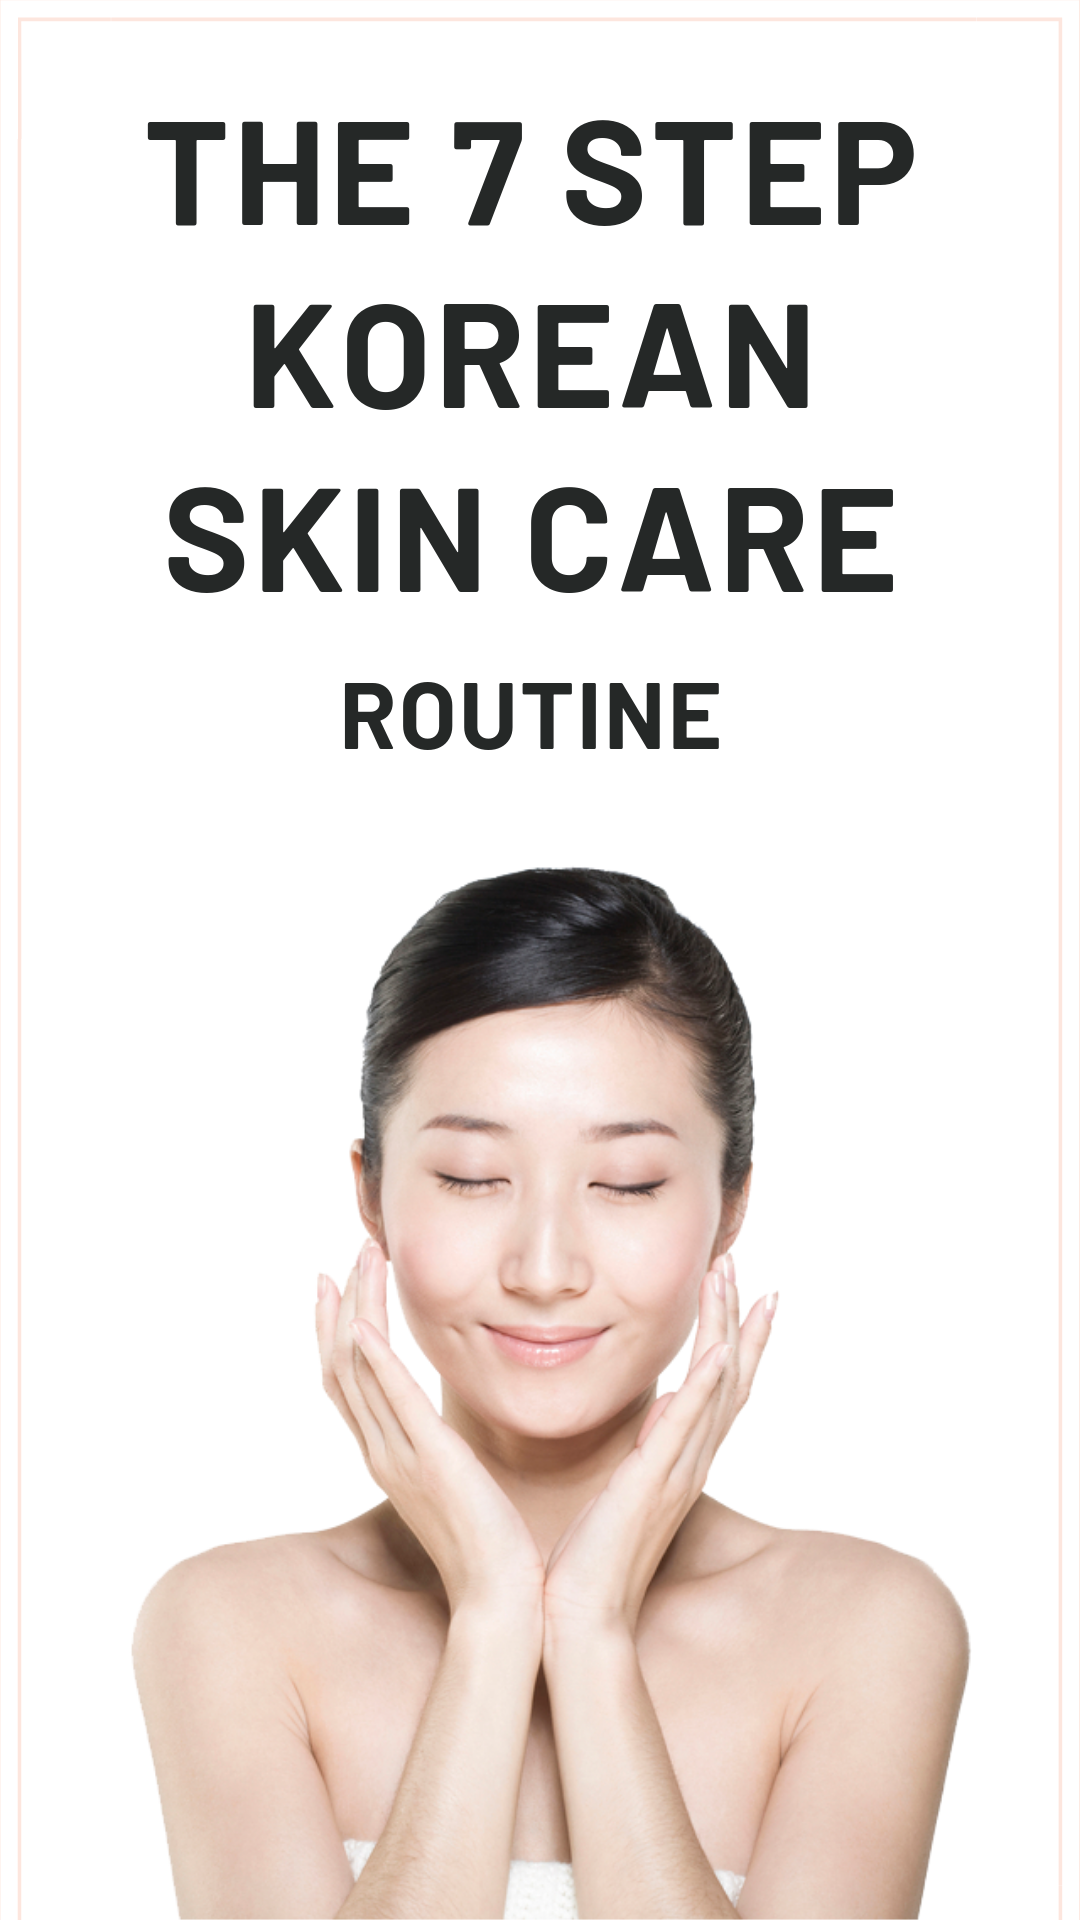 The 7 Step Skincare Routine Explained Skin care routine